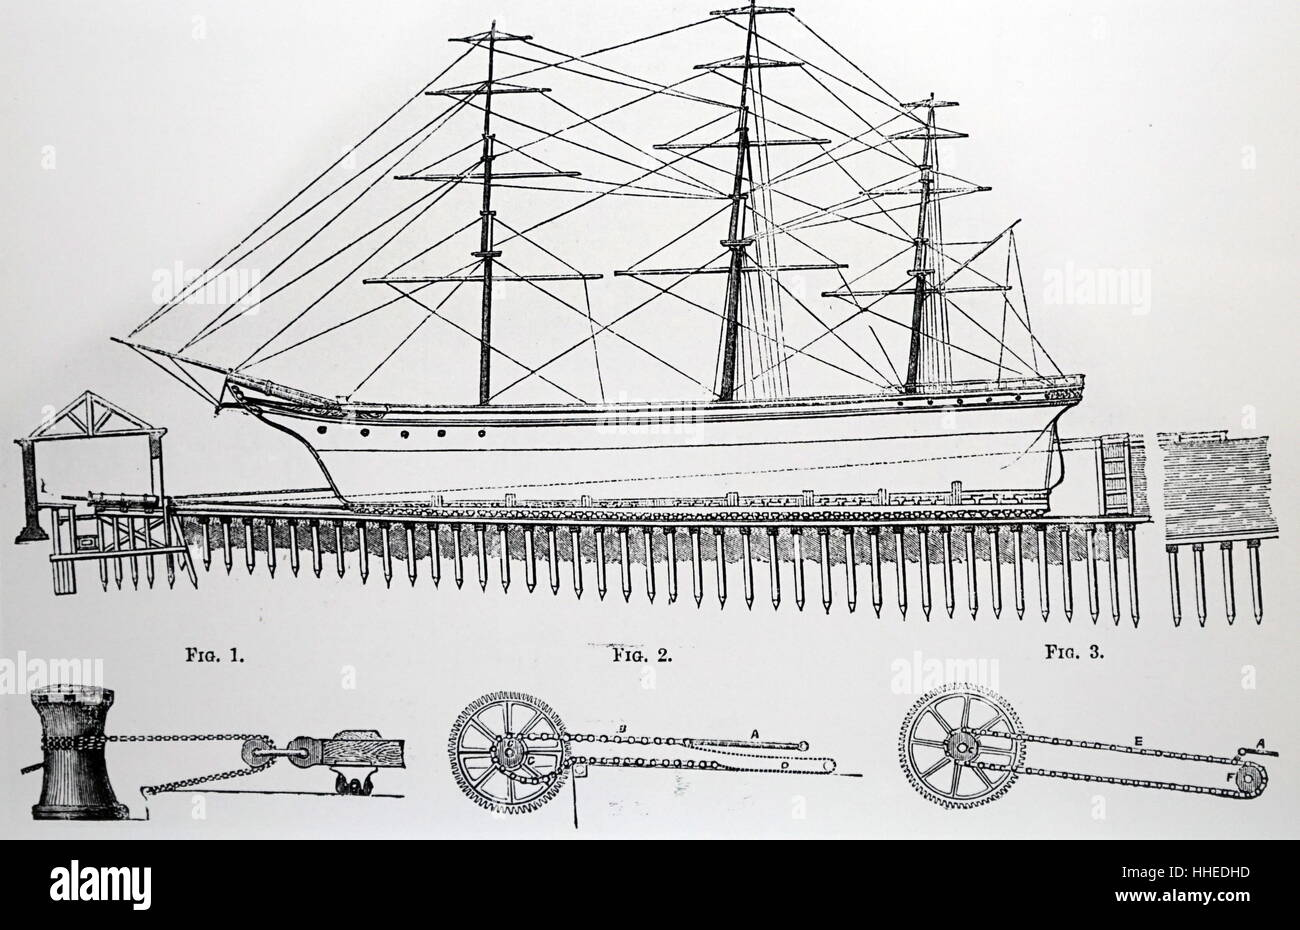 Diagram of a special dry dock for hauling up a ship for repairs diagram of a special dry dock for hauling up a ship for repairs designed by thomas morton of leith dated 19th century pooptronica Images